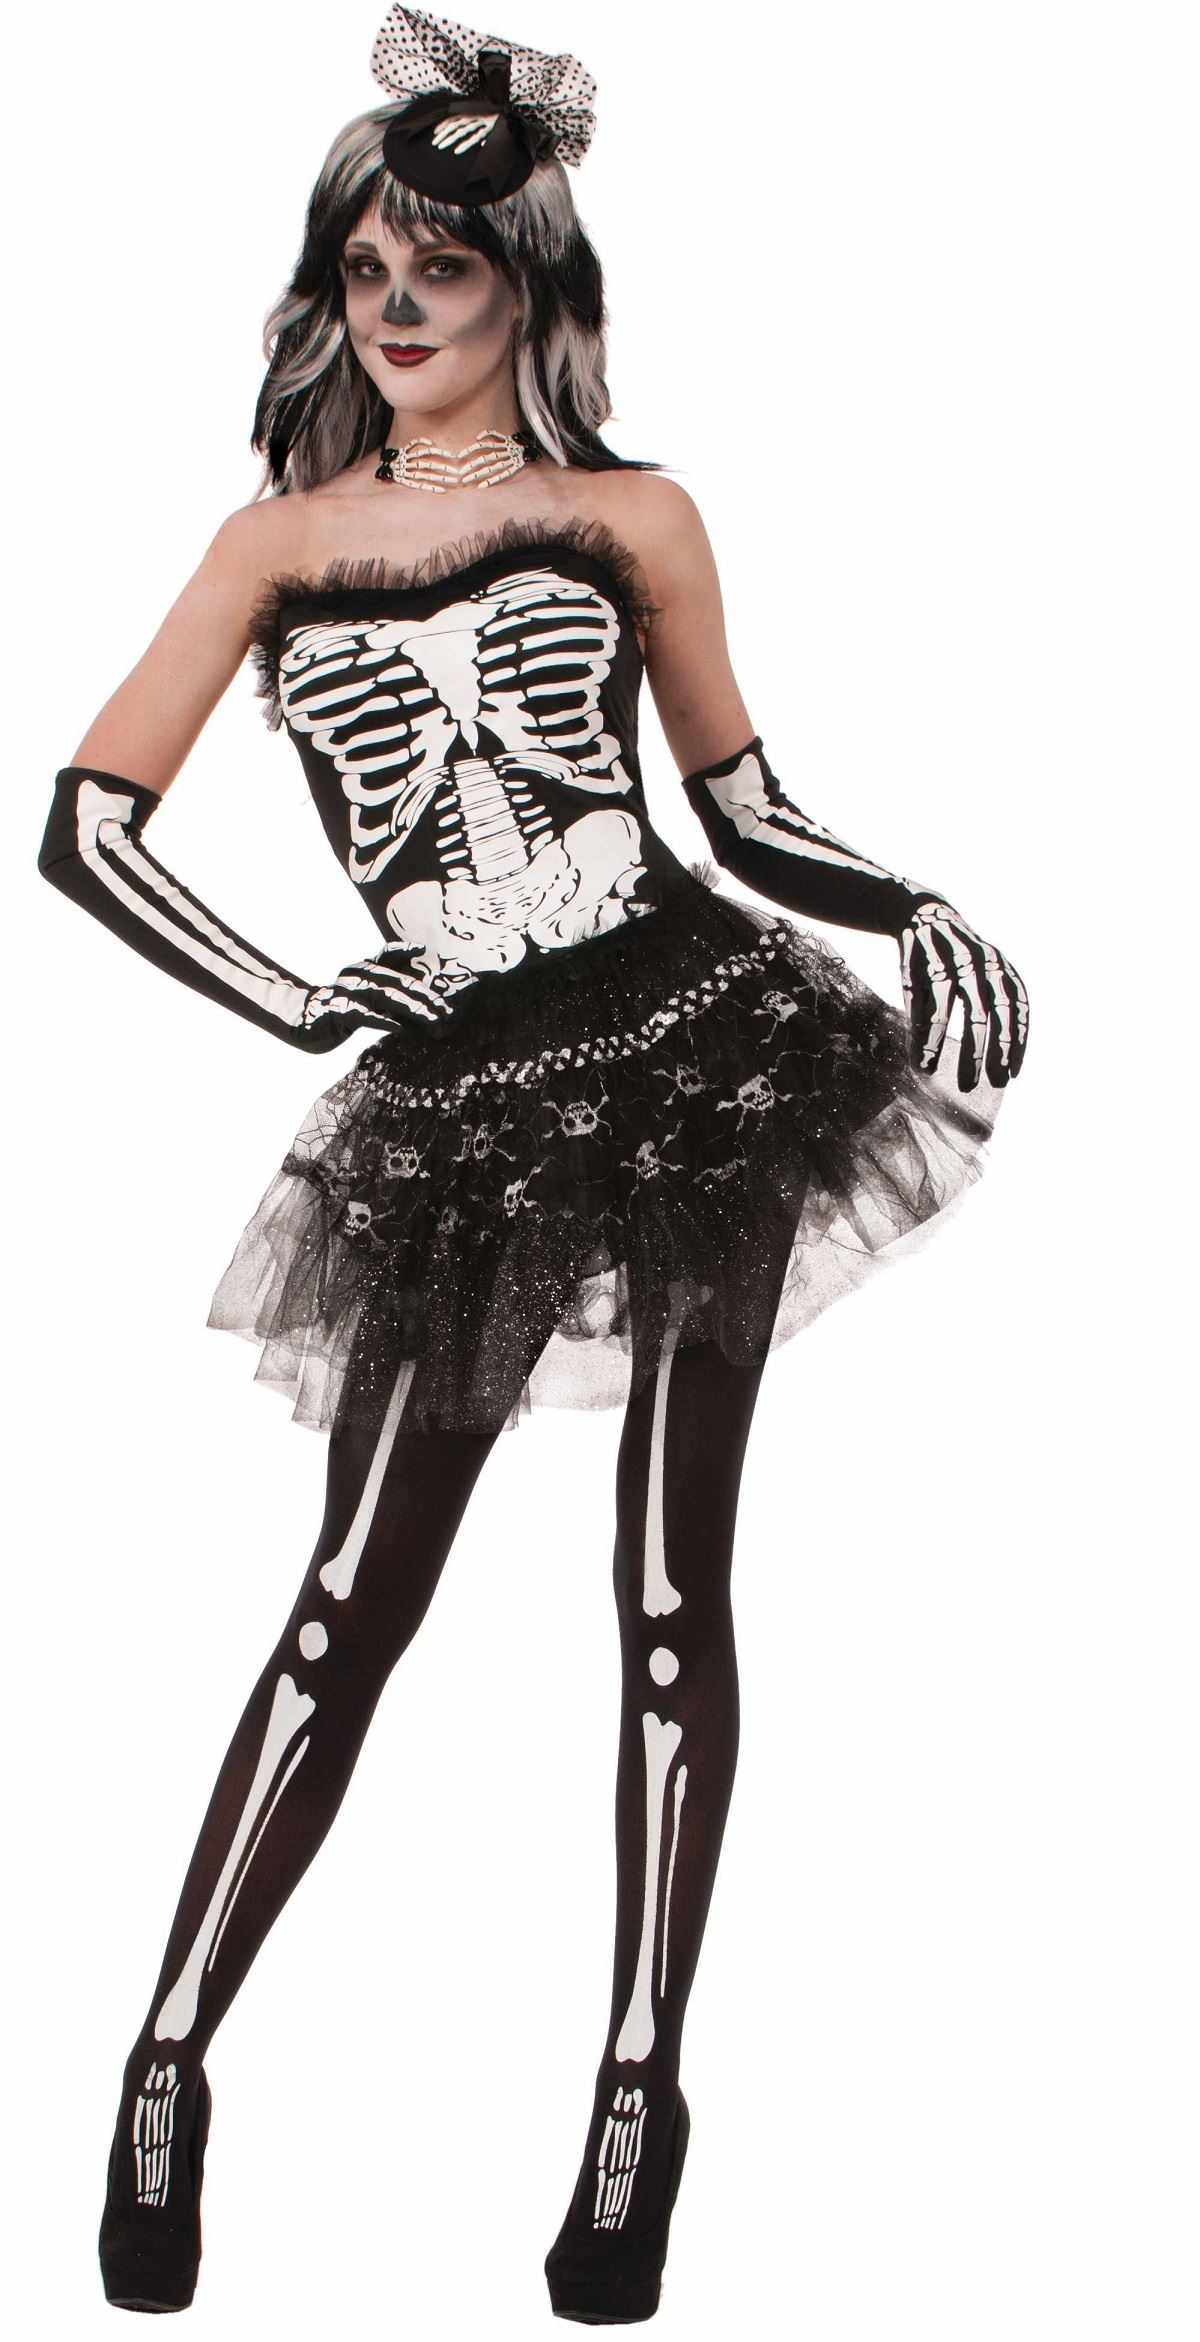 Sexy Skeletons Costumes for Women — Skeleton Halloween Costumes for Kids & Adults. From sexy skeleton costumes for women to elaborate zombie skeleton costumes for boys and skeleton morphsuits for men, if bare bones are your thing, you've come to the right haunting place.